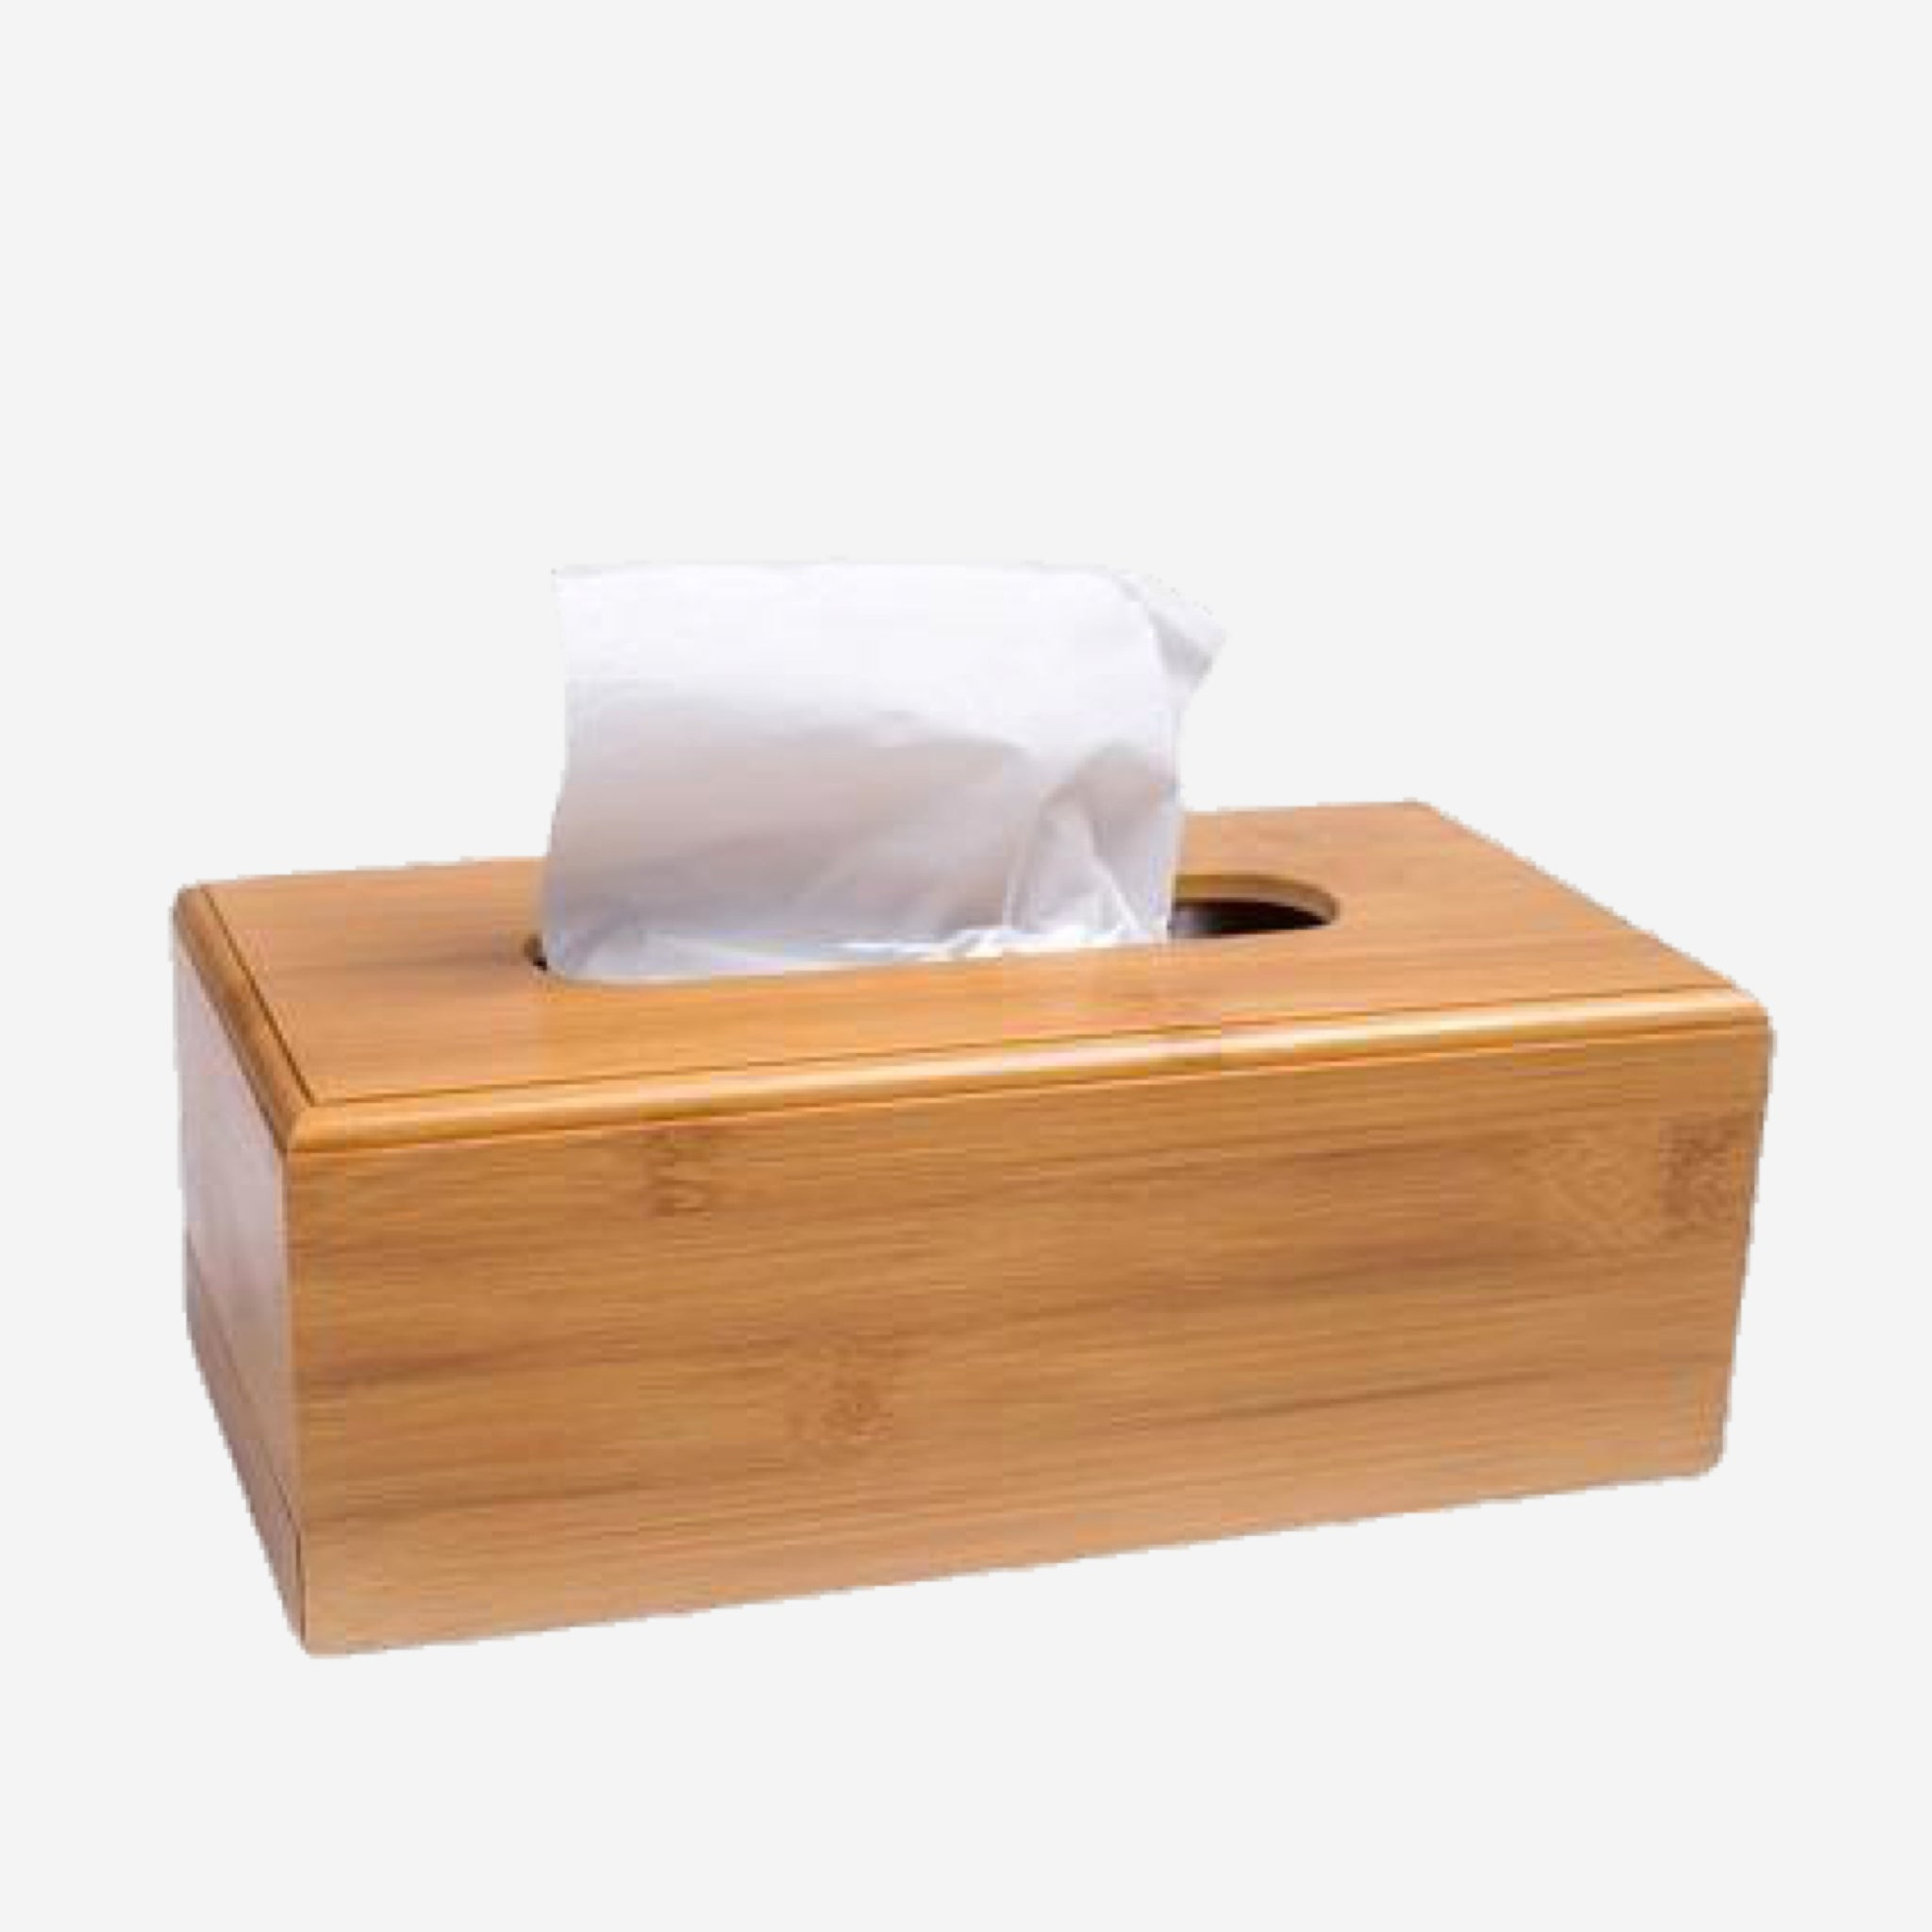 Modern Large Rectangle Bamboo Wood Tissue Box Creative Seat Type Roll Paper Tissue Canister Eco-Friendly Wooden Table Decor Trend